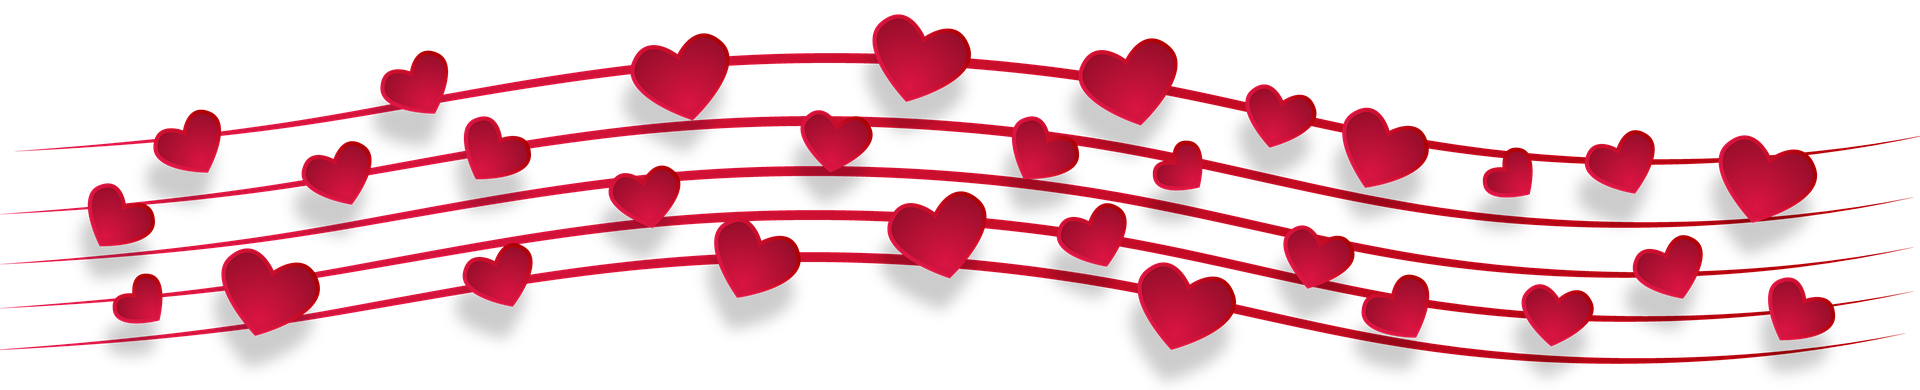 Hearts as music notes by monicore via pixabay